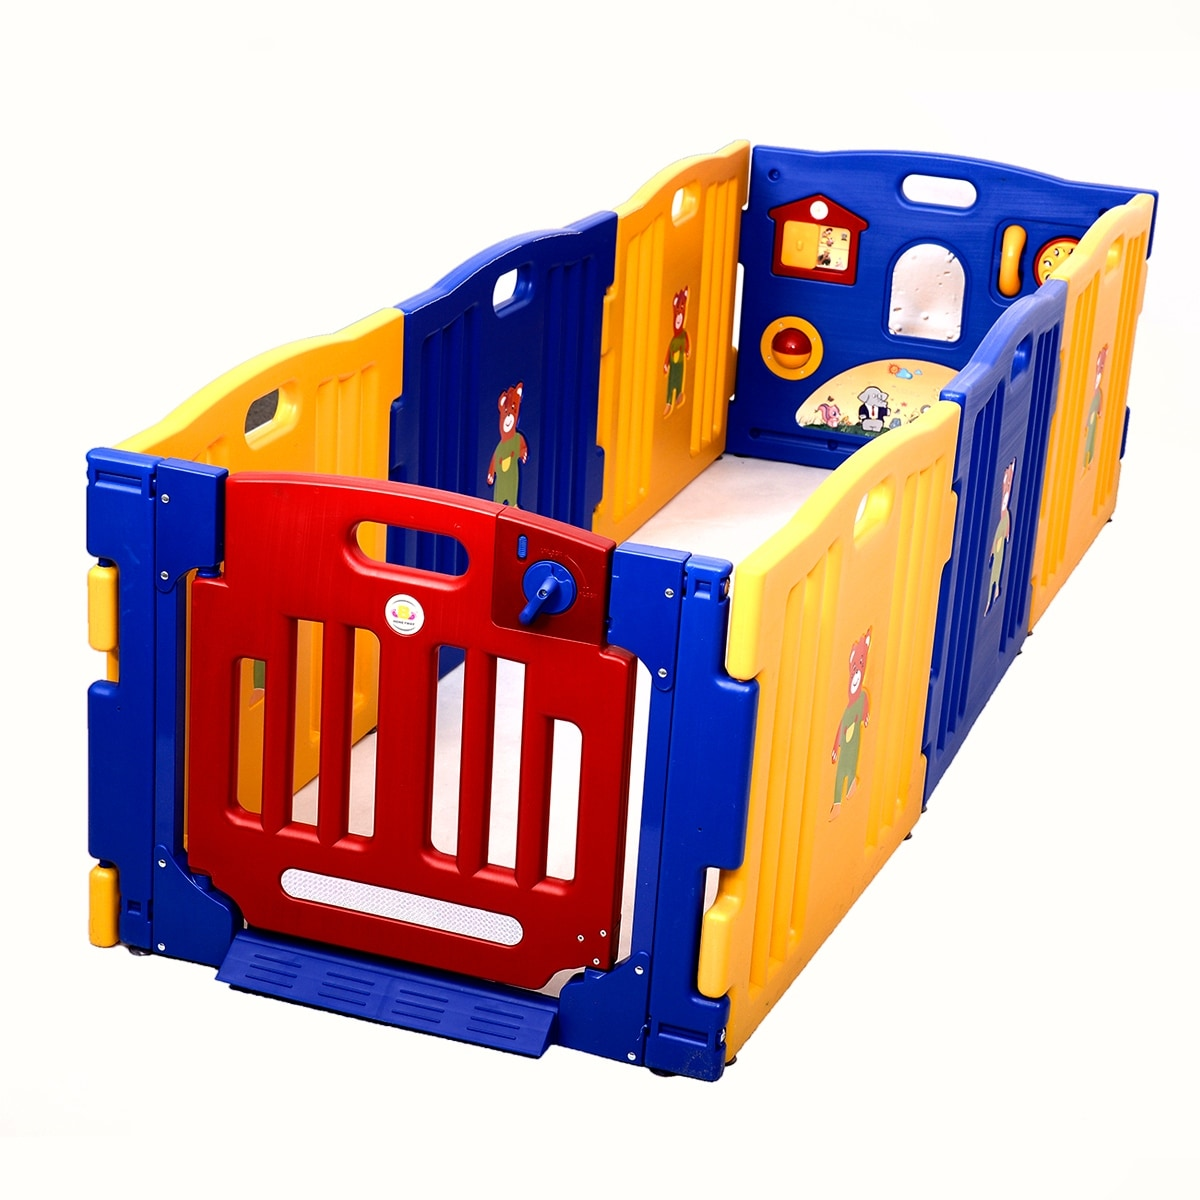 Costway Baby Playpen Kids 8 Panel Safety Play Center Yard Home Indoor Outdoor Pen On Free Shipping Today 15633687